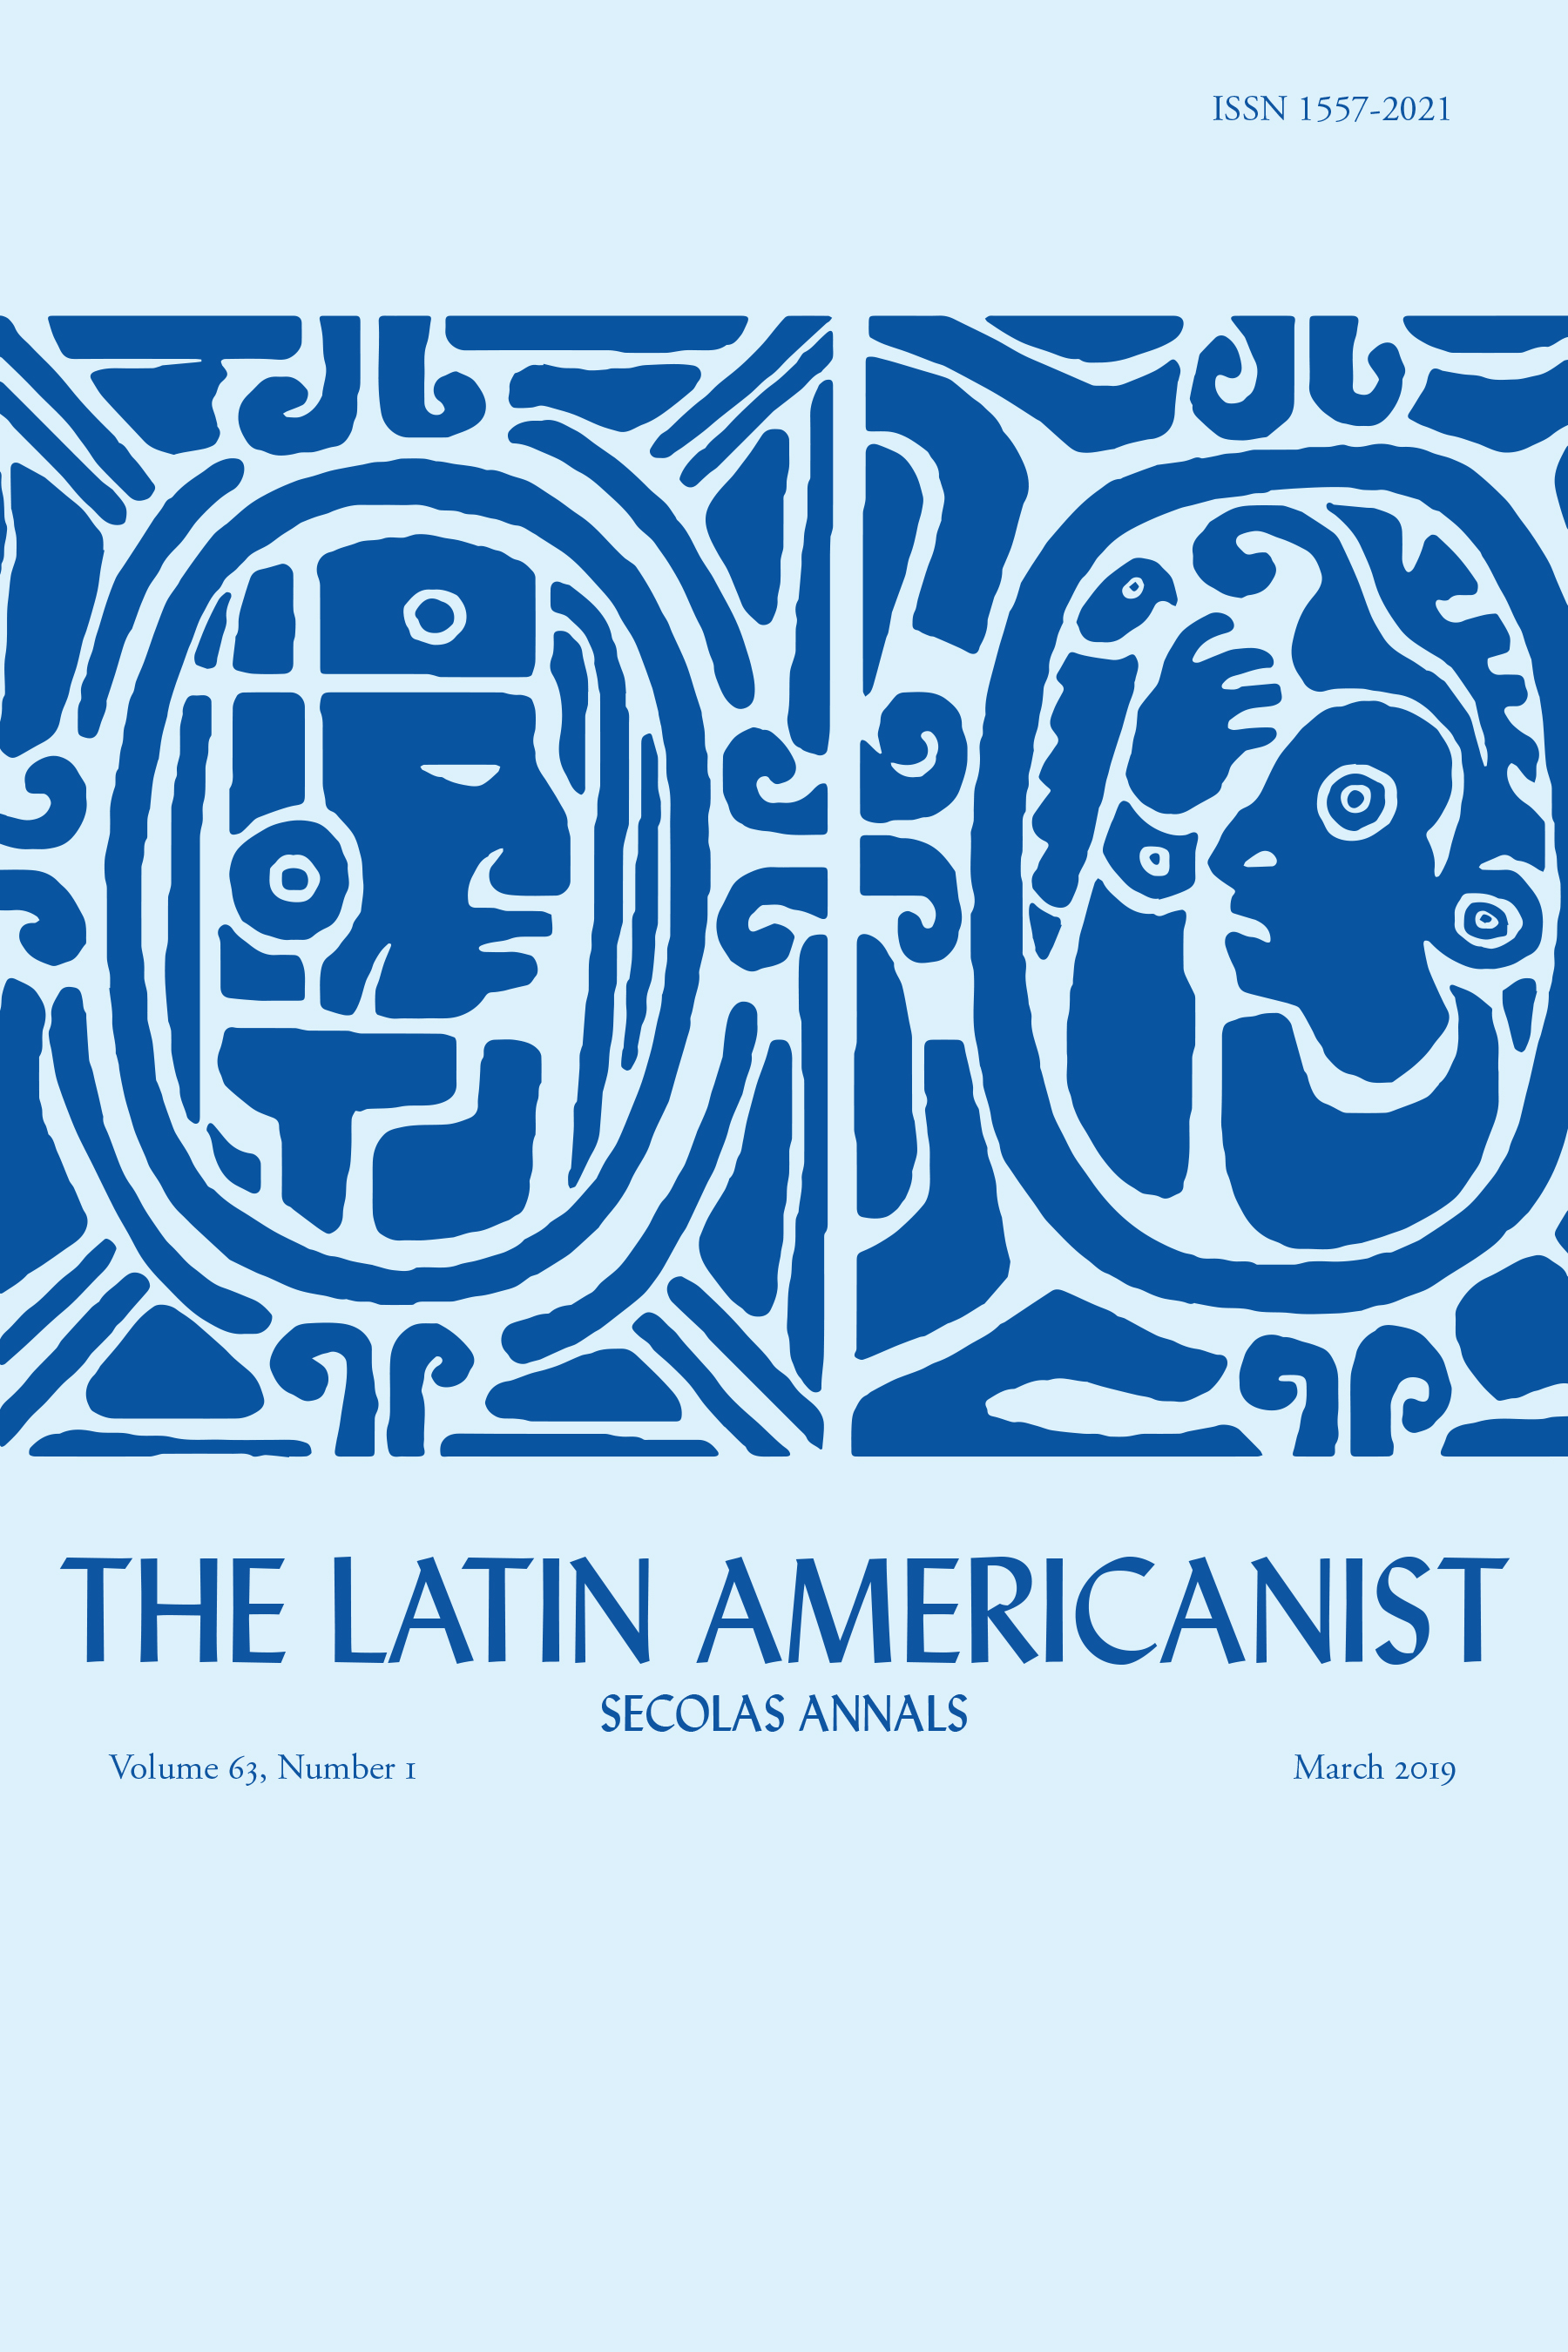 The Latin Americanist journal